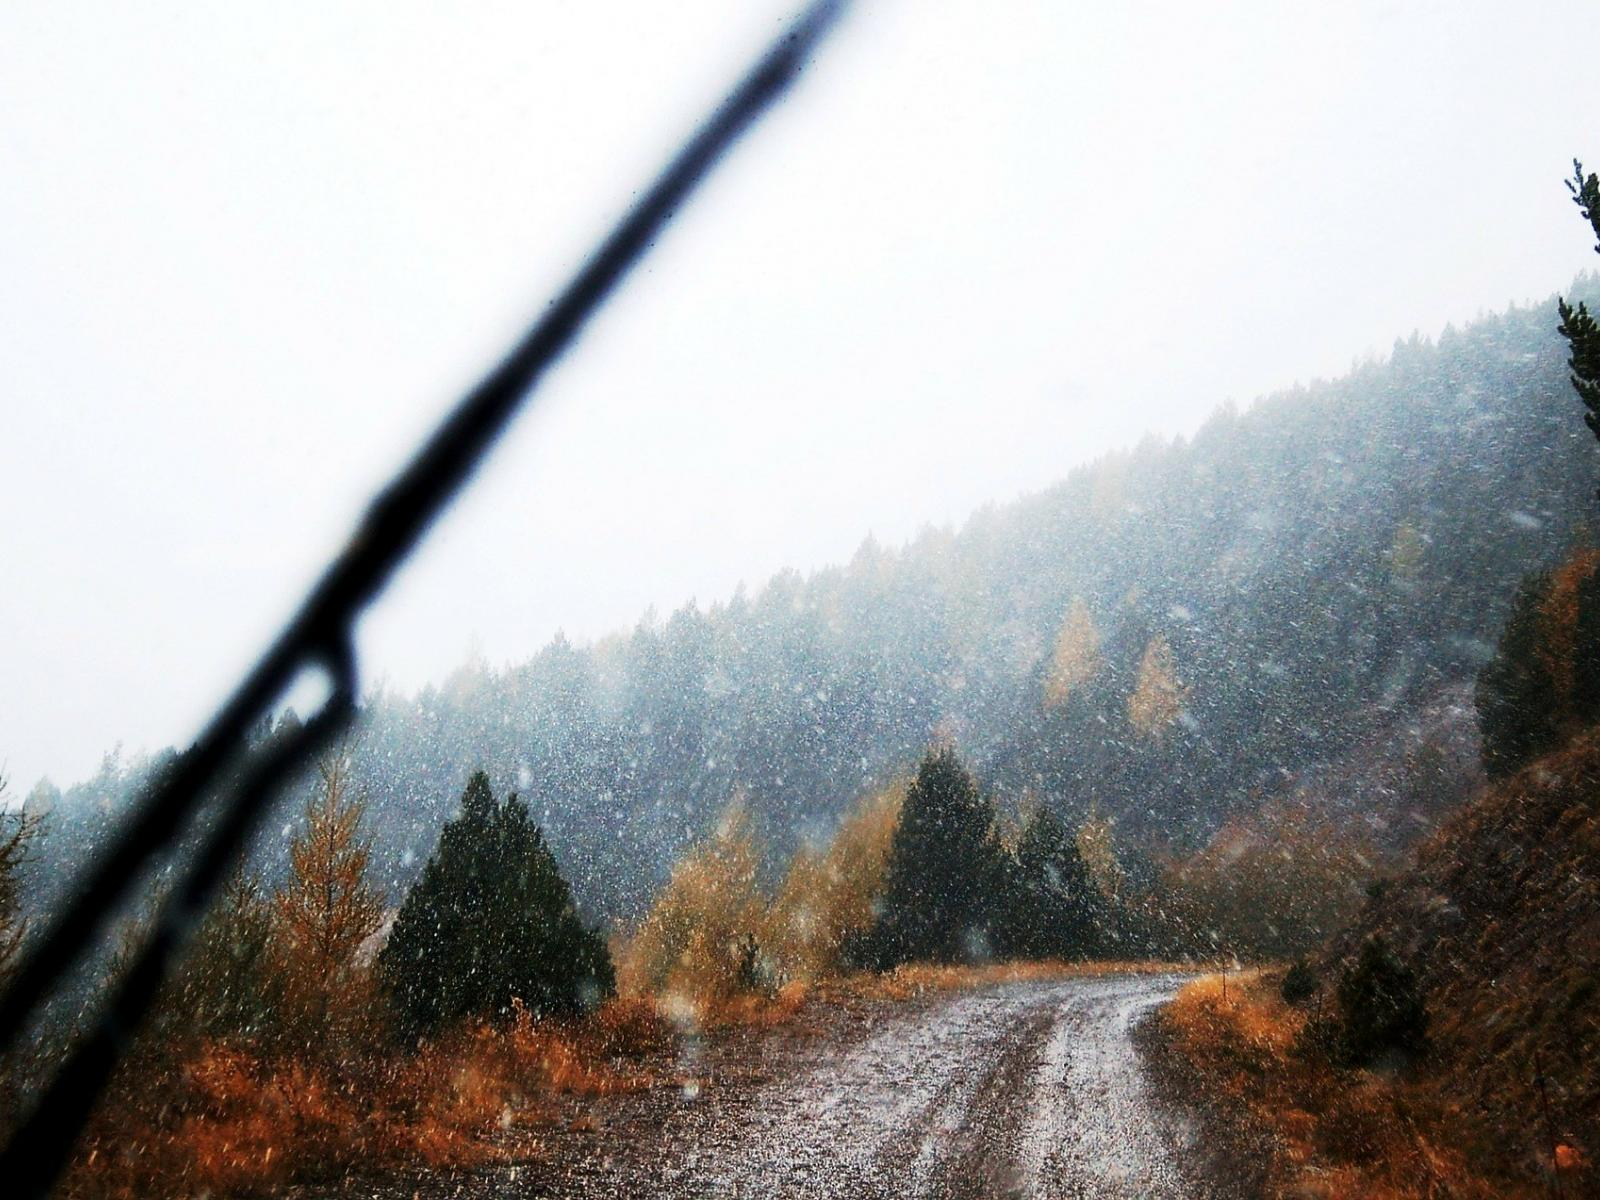 view through a car windshield of a rainy drive on a dirt mountain road